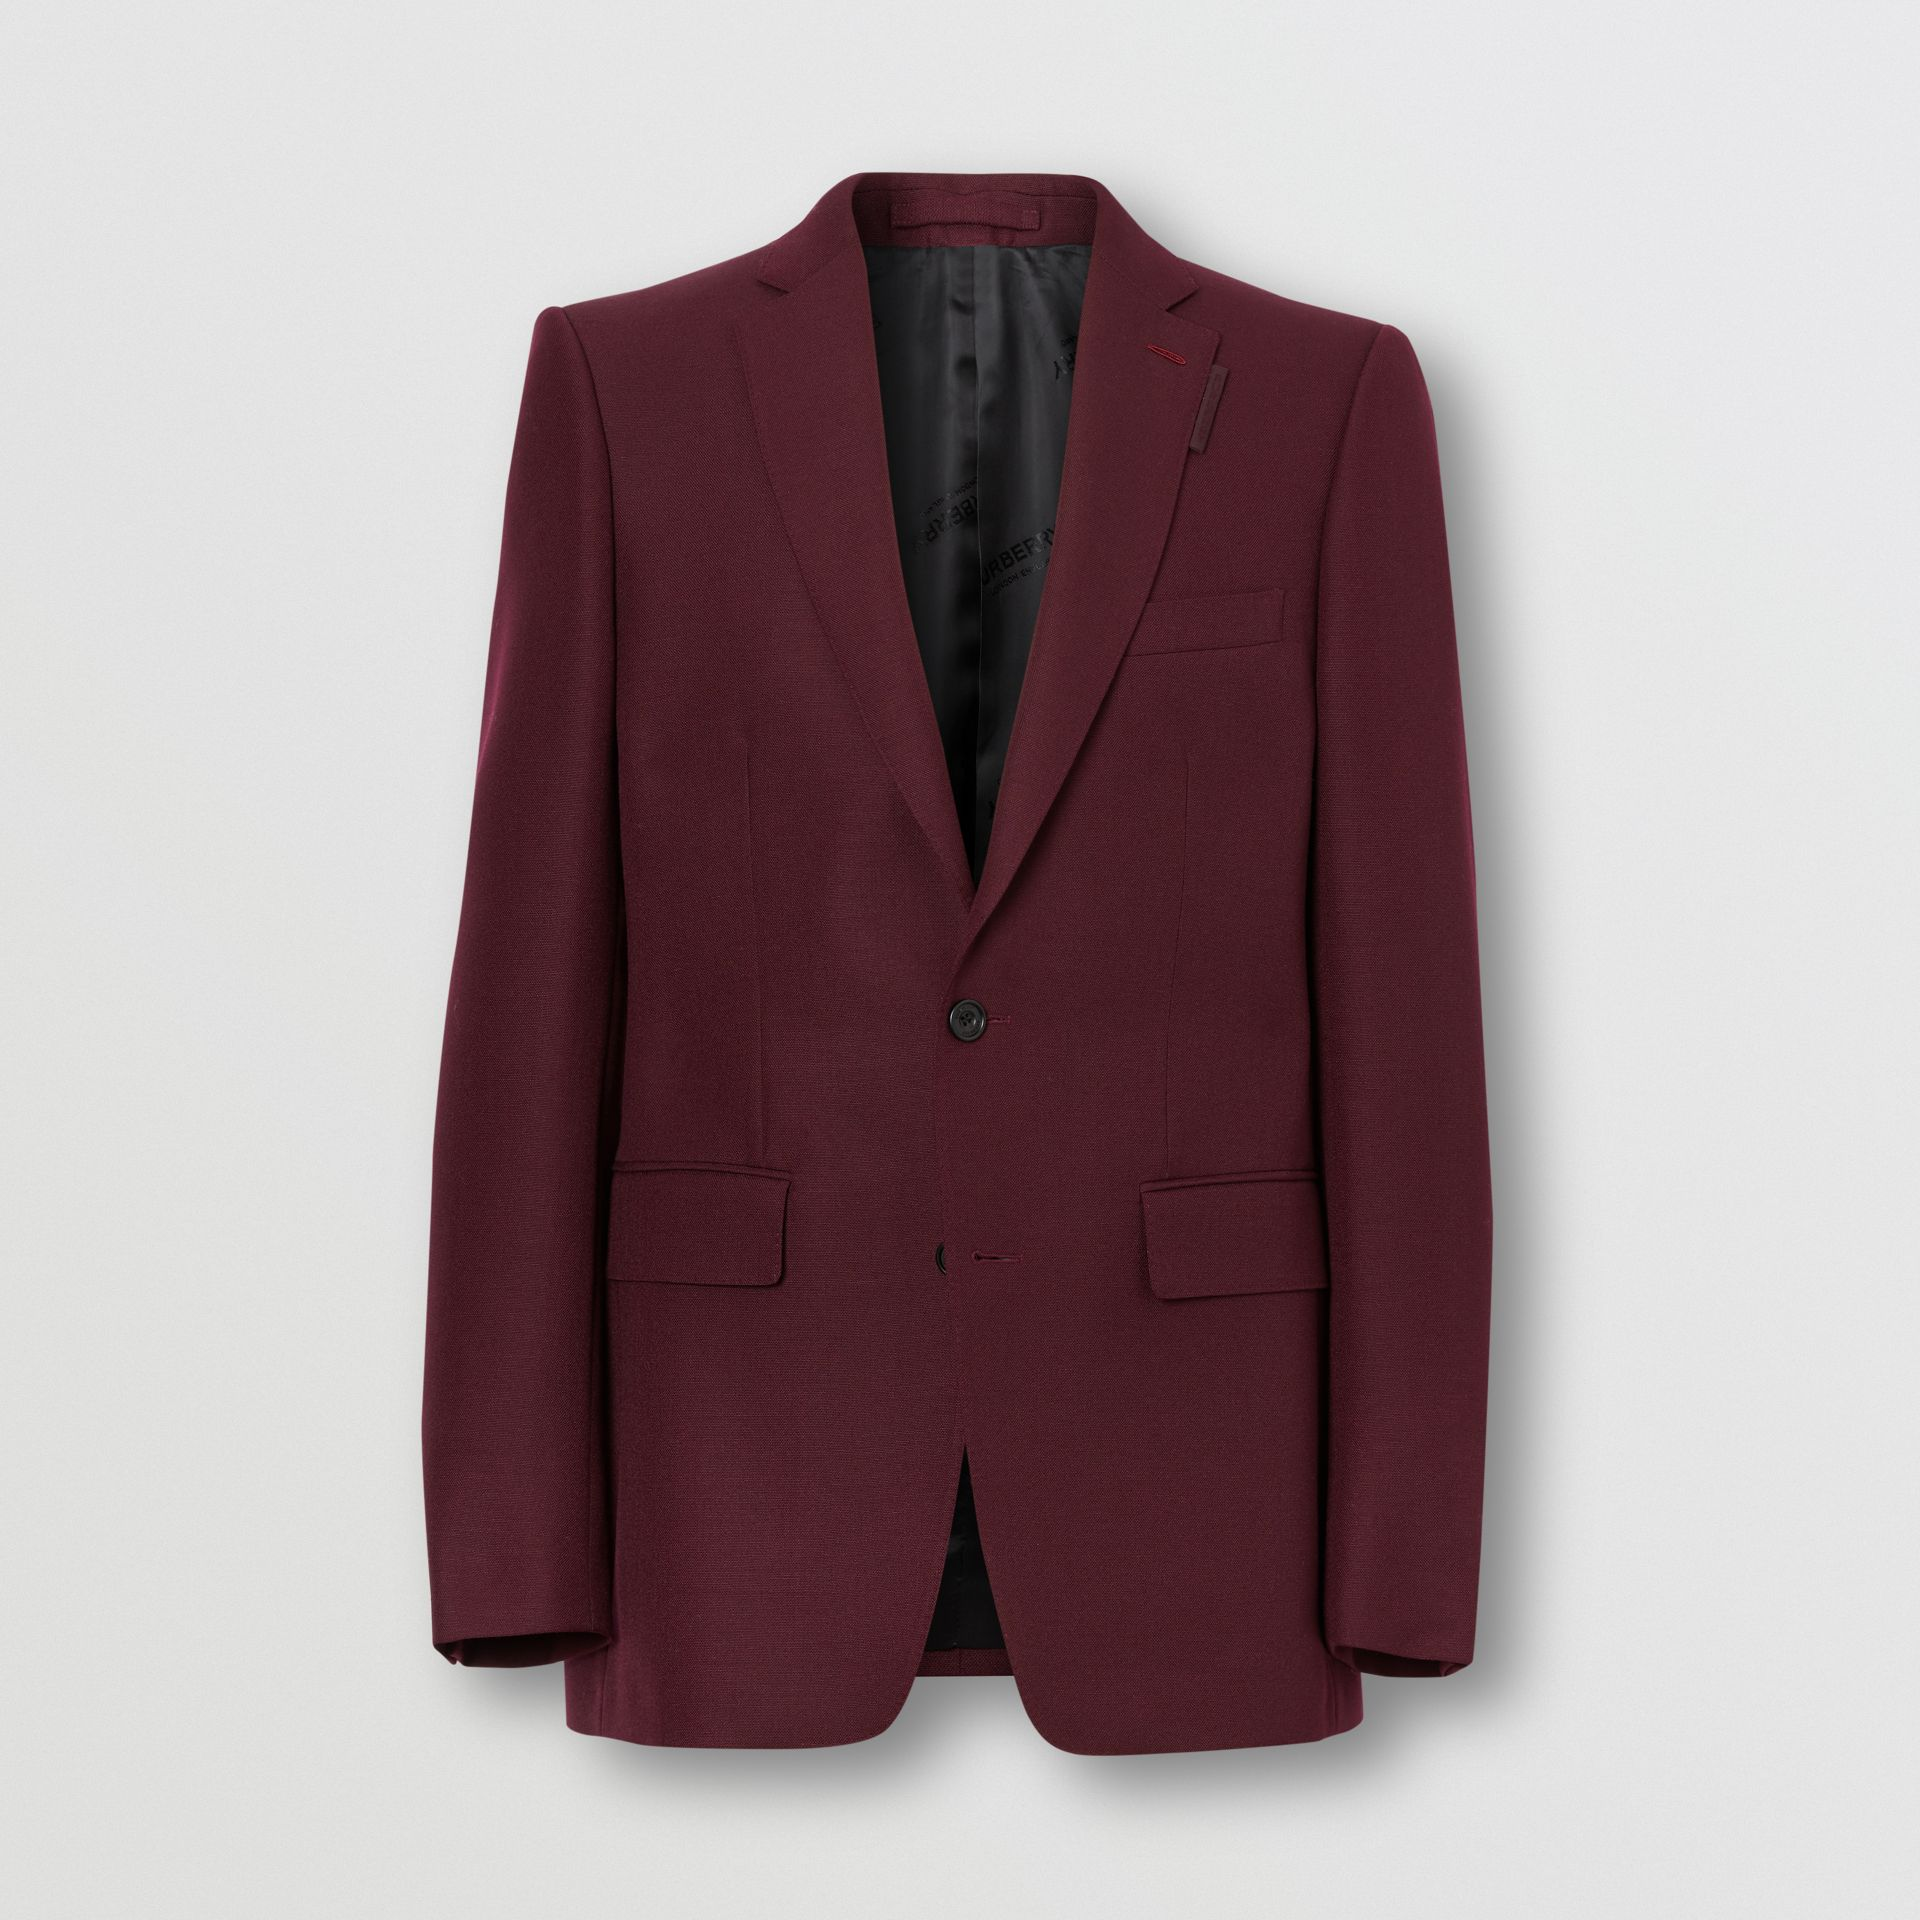 English Fit Wool Mohair Tailored Jacket in Deep Burgundy - Men | Burberry United Kingdom - gallery image 3